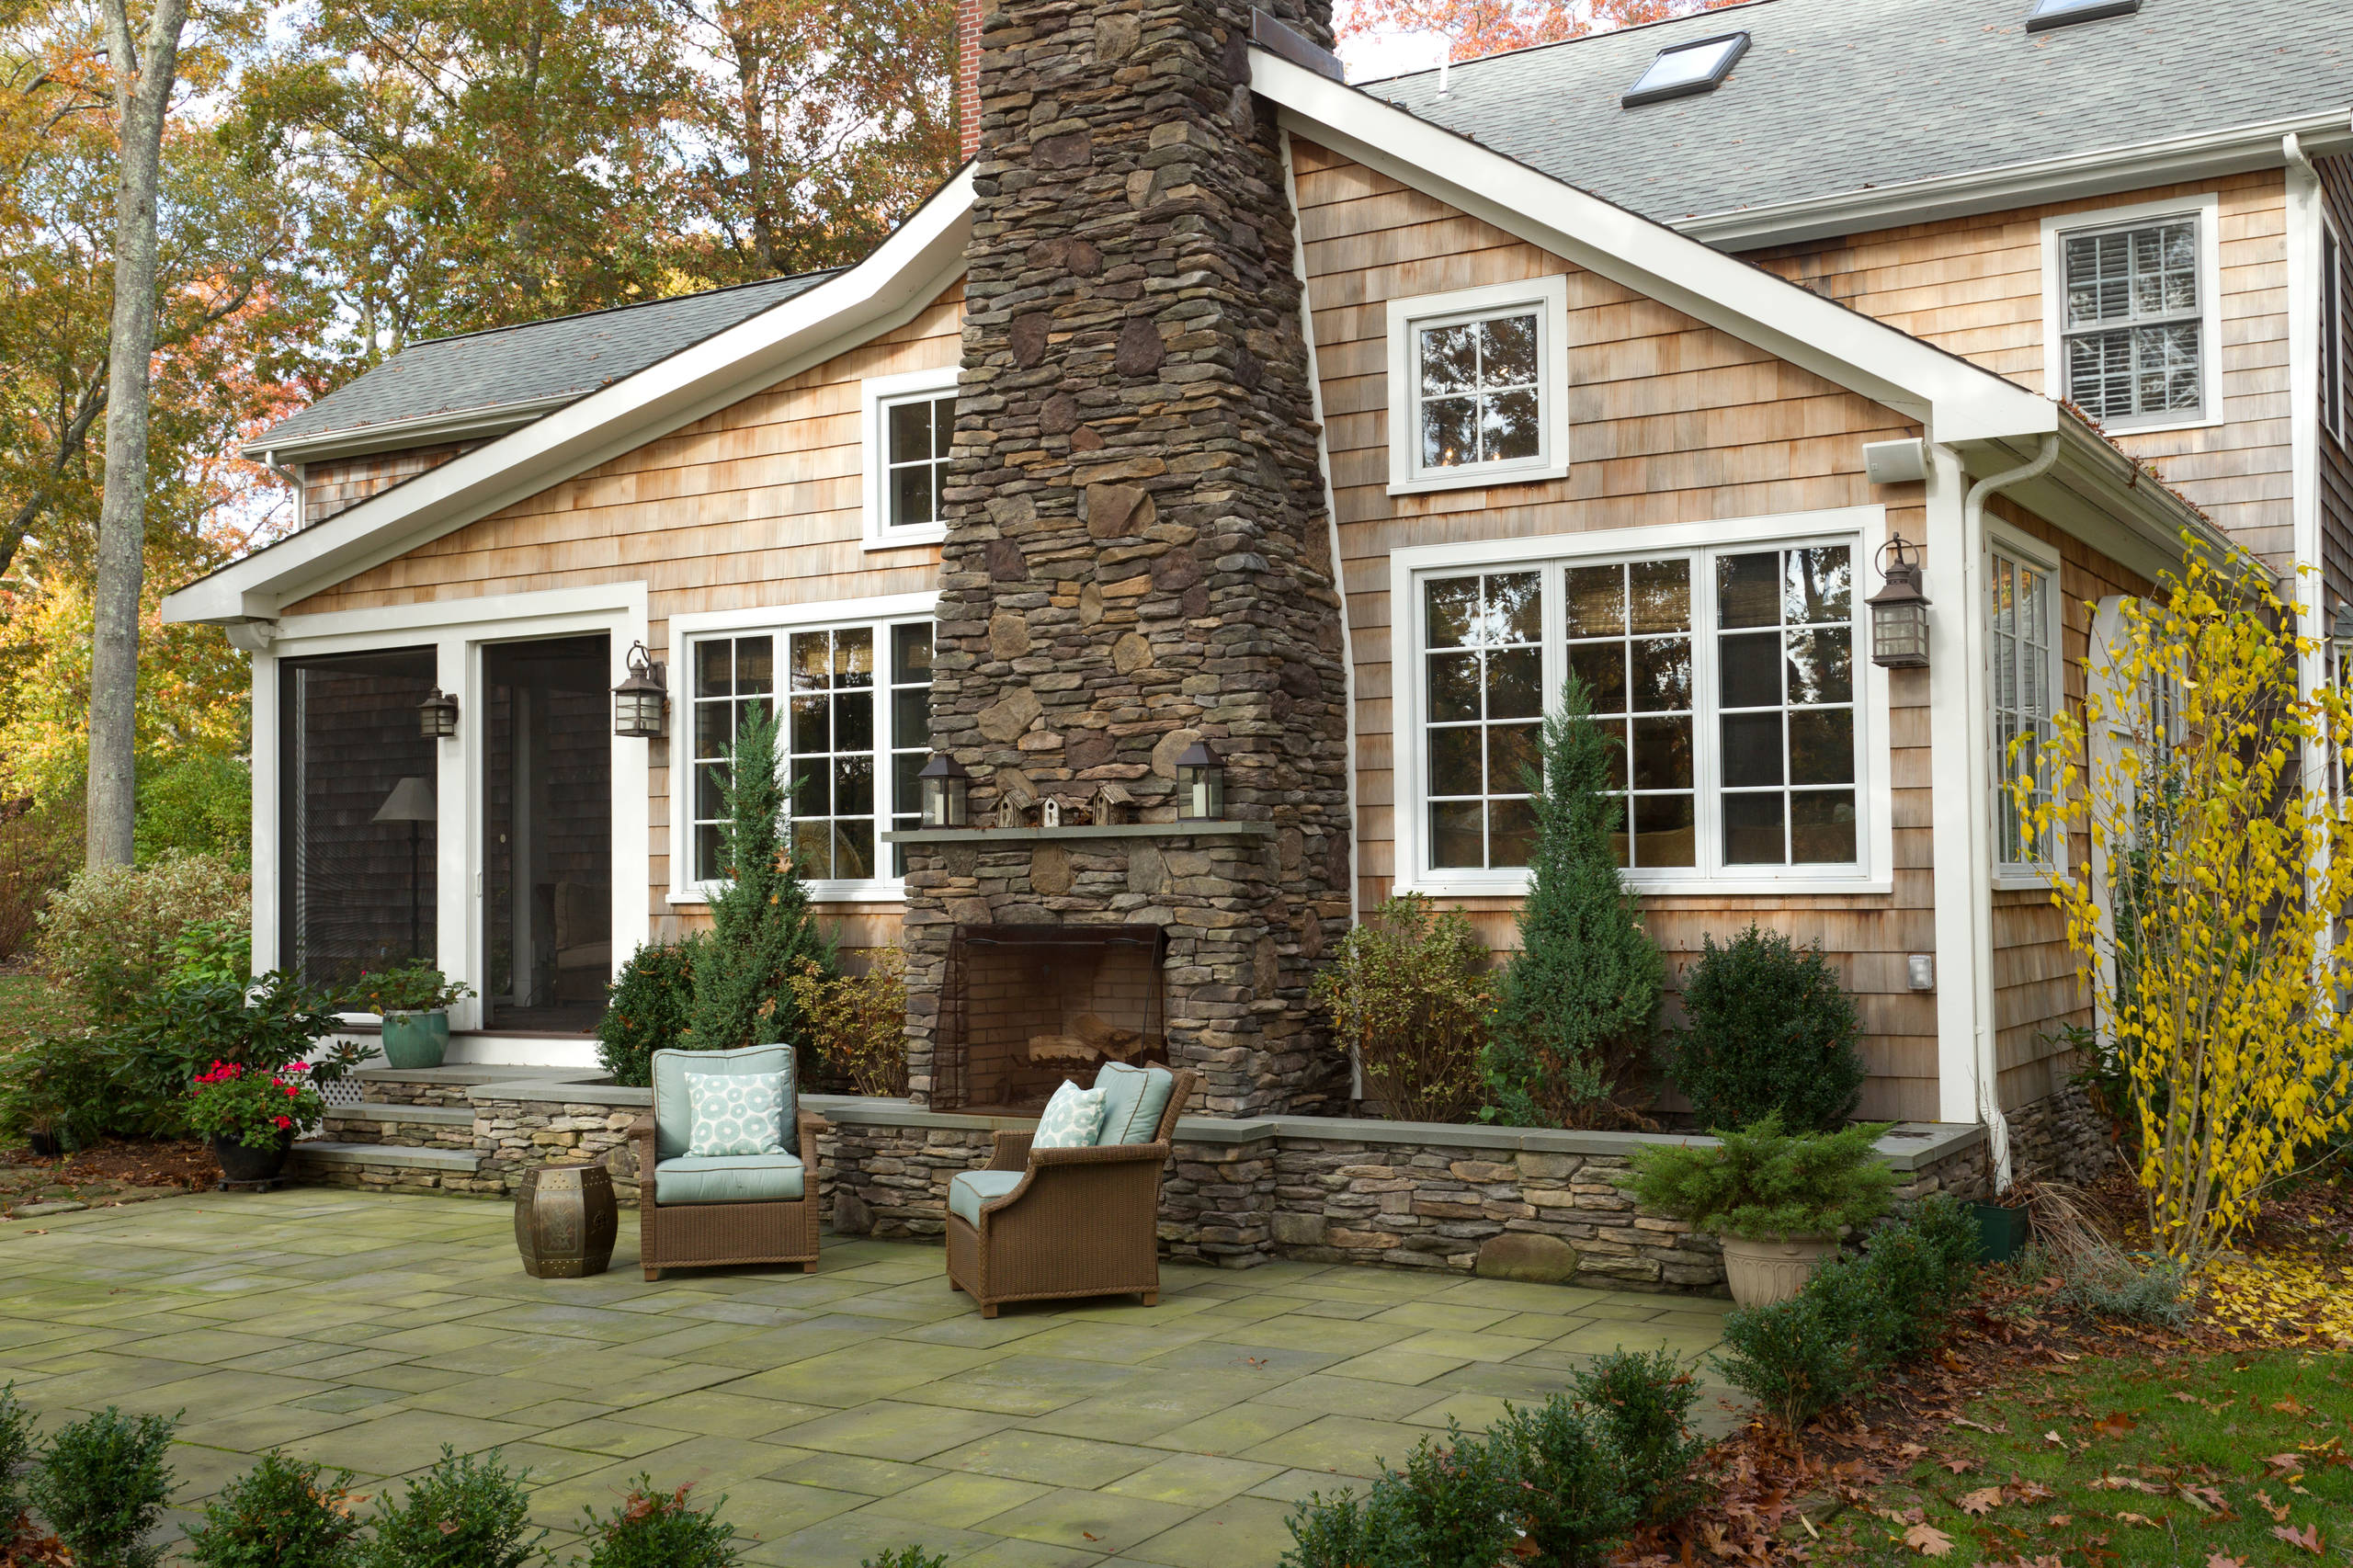 Exterior of New England shingle home